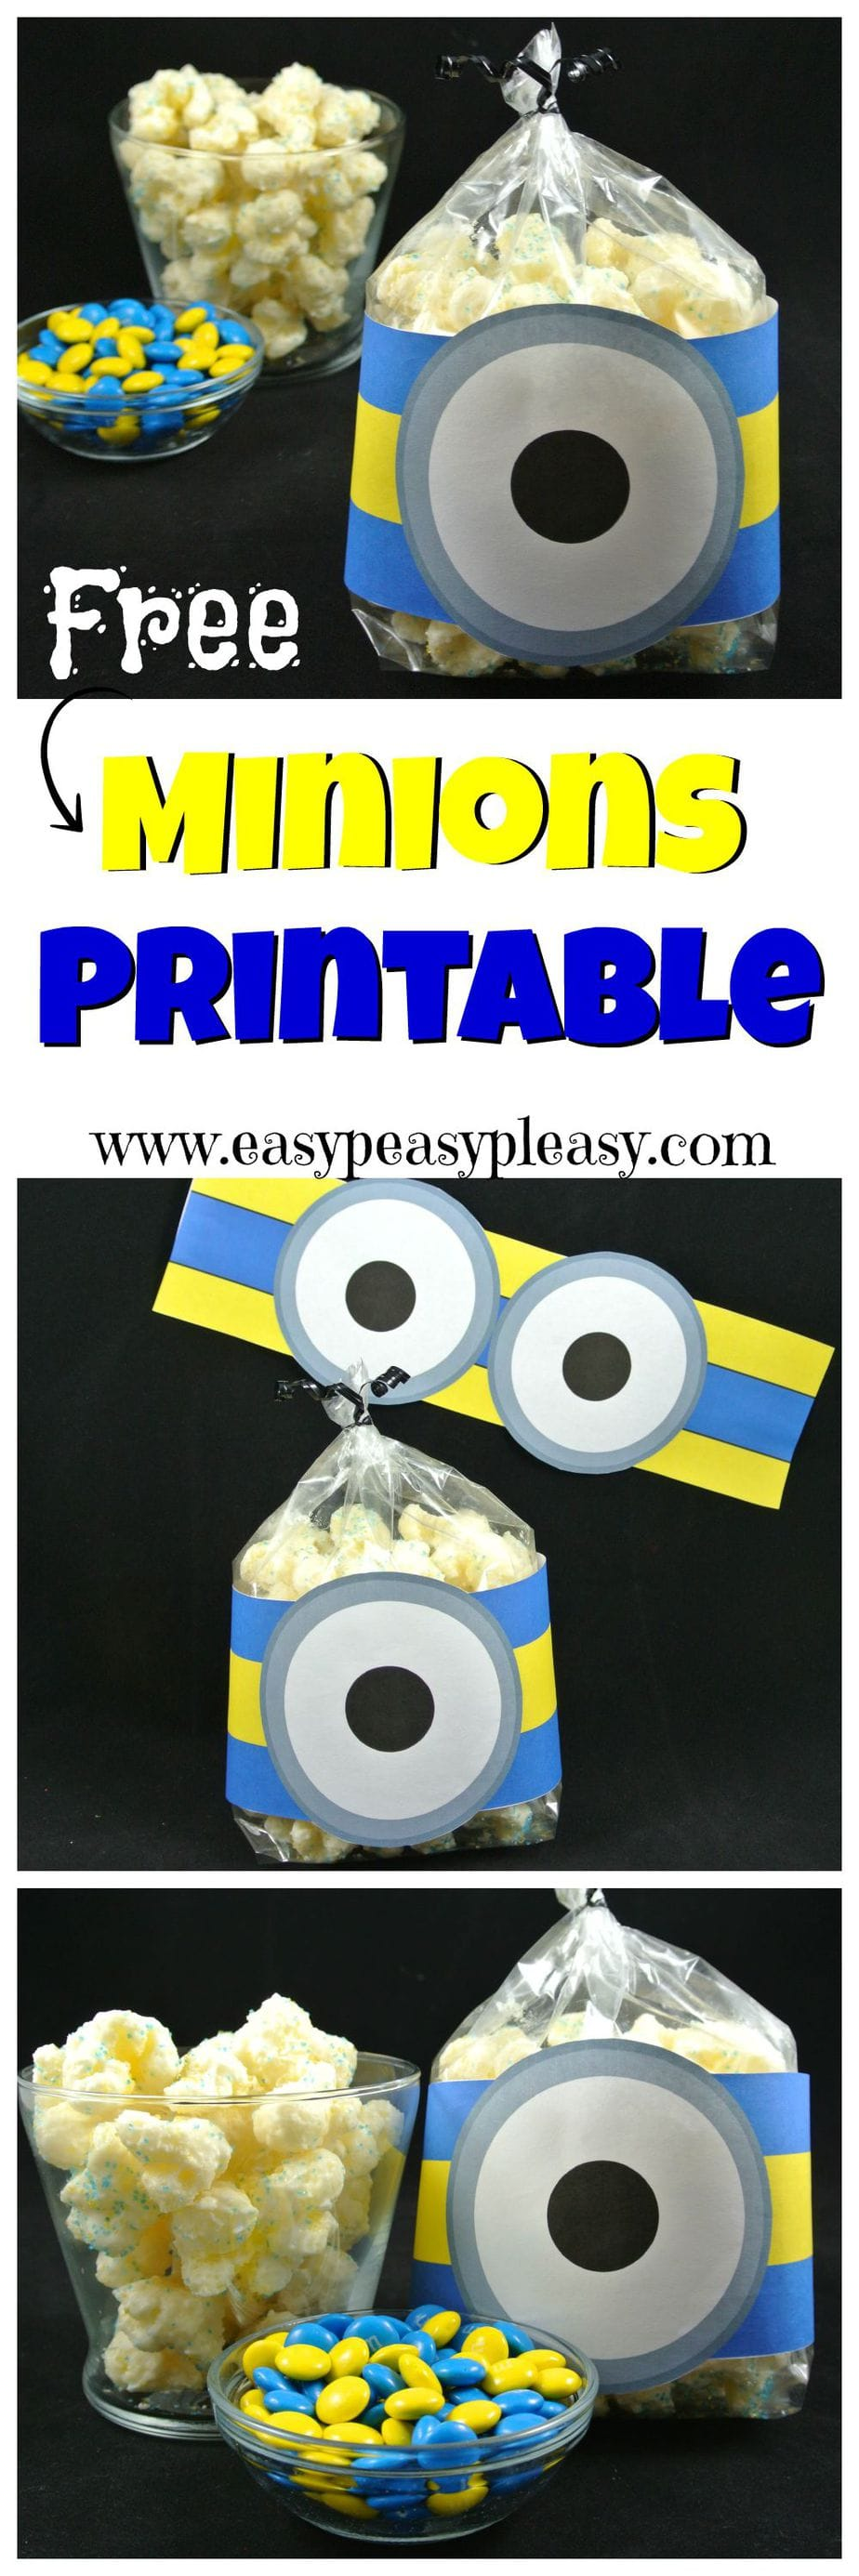 Come and get your Free Minion Printable that works great on goodie bag, party favors, and decorations. Just print and cut.